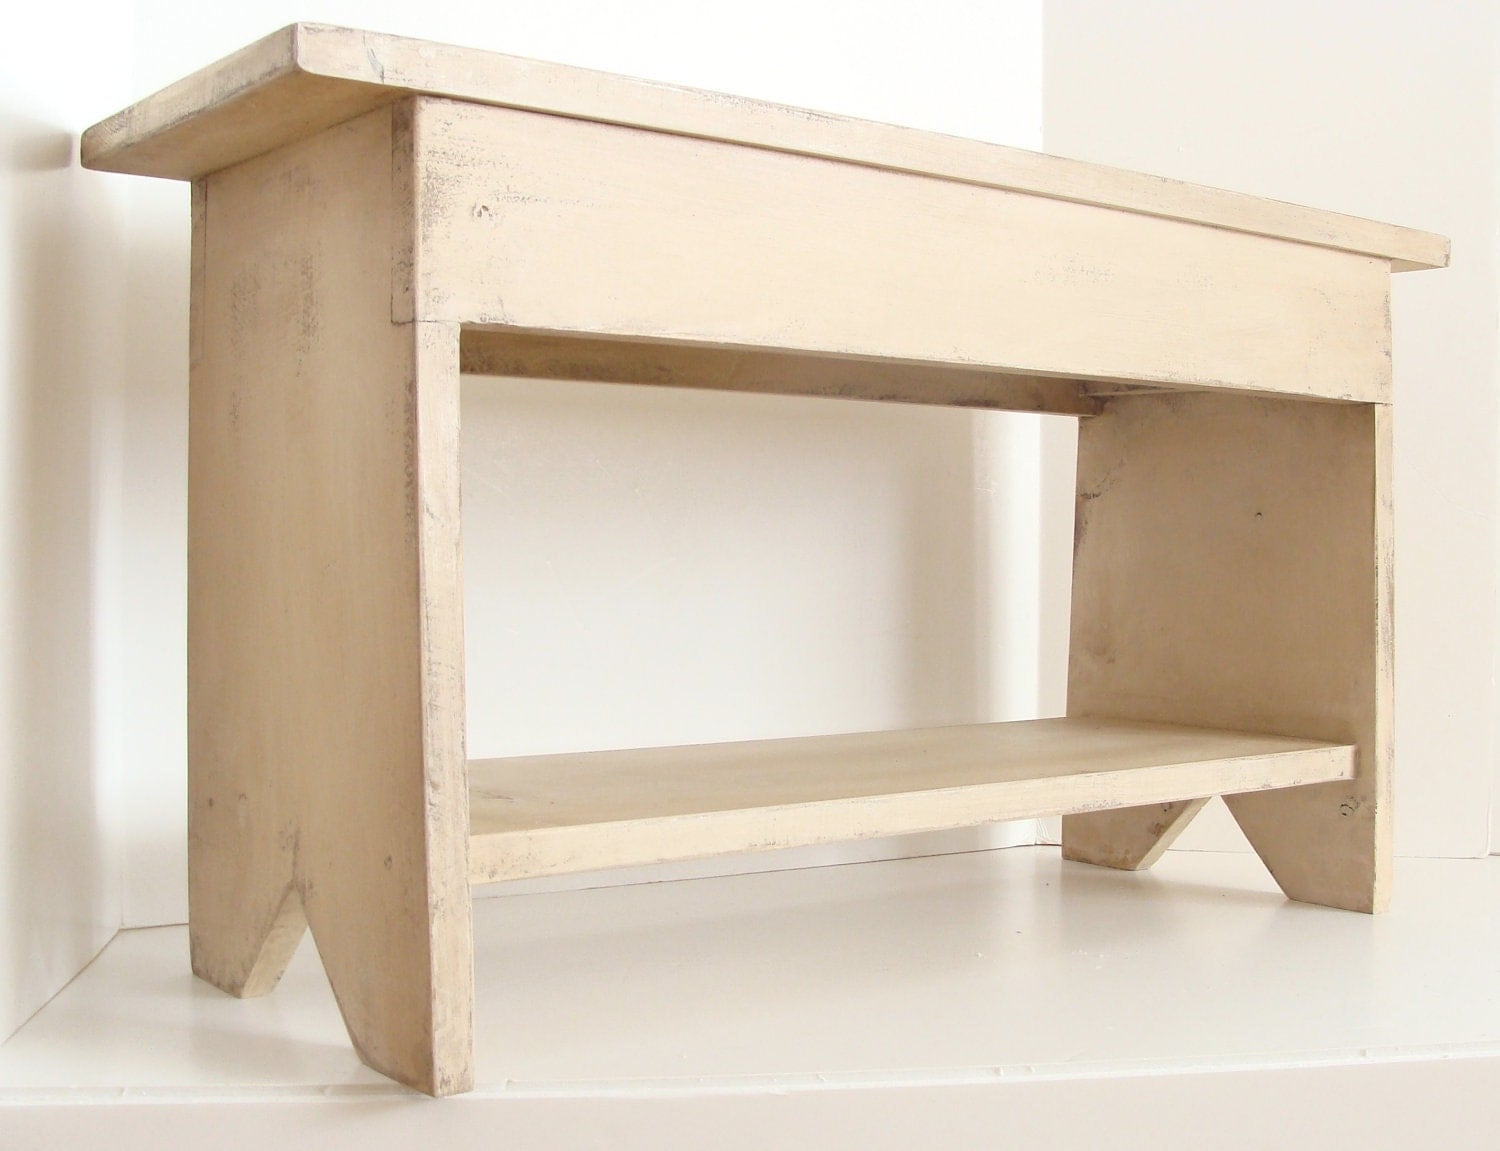 Popular items for bench with storage on Etsy